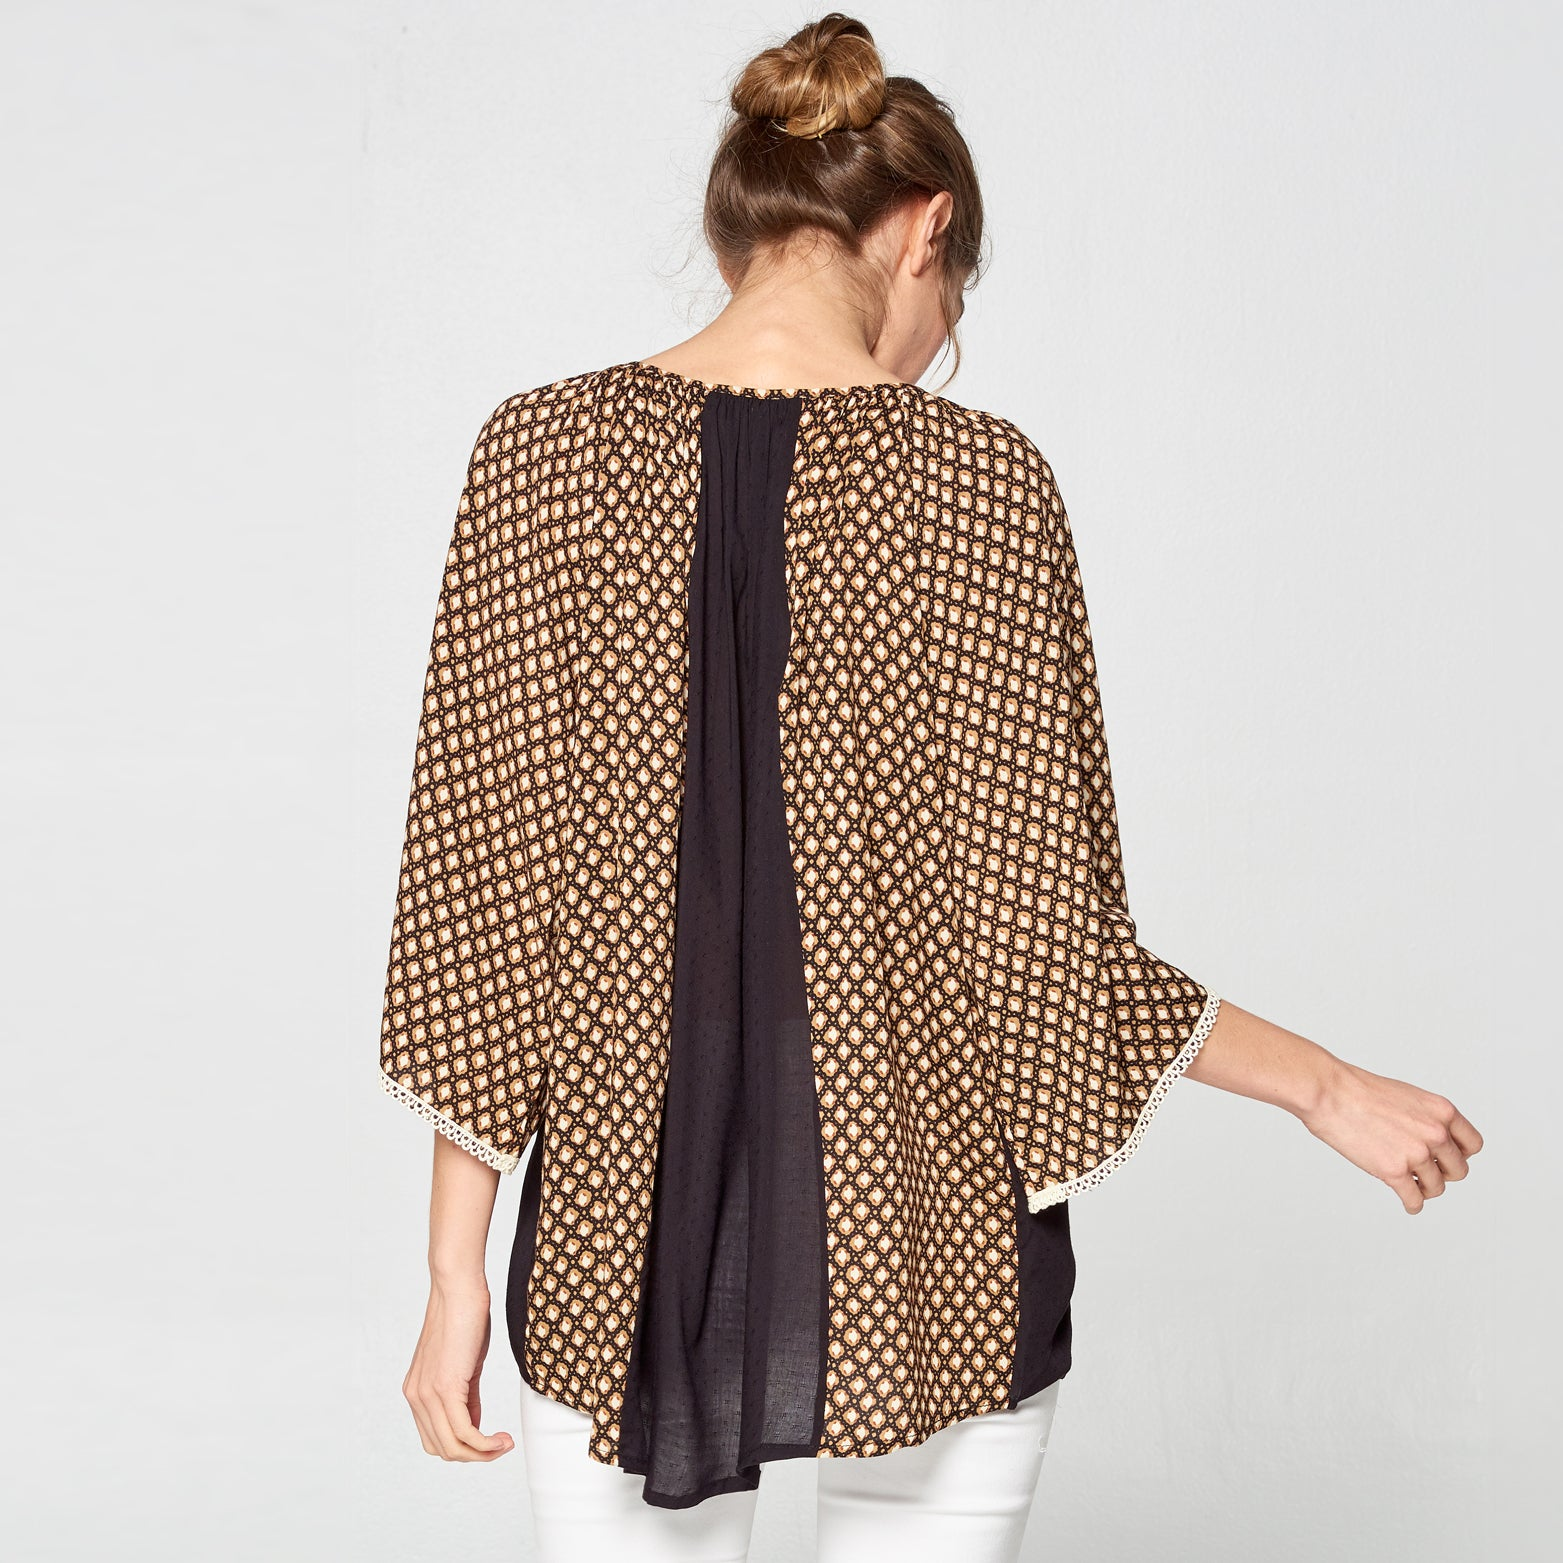 Honey Block Boho Top - Love, Kuza